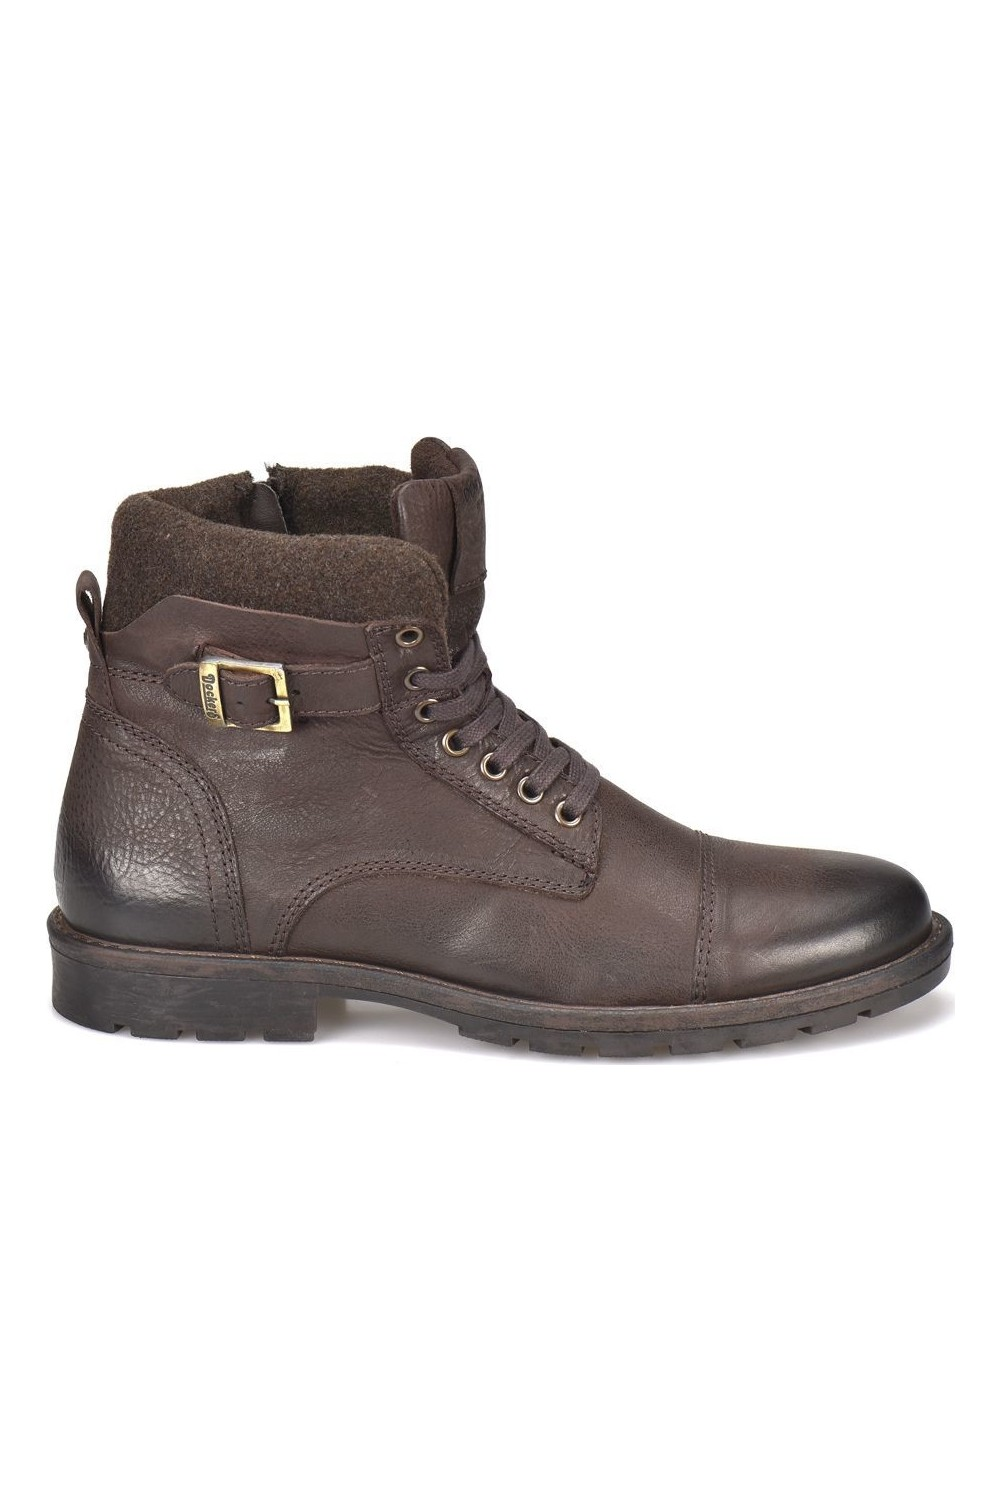 Dockers By Gerli Men's Leather Boots 225222